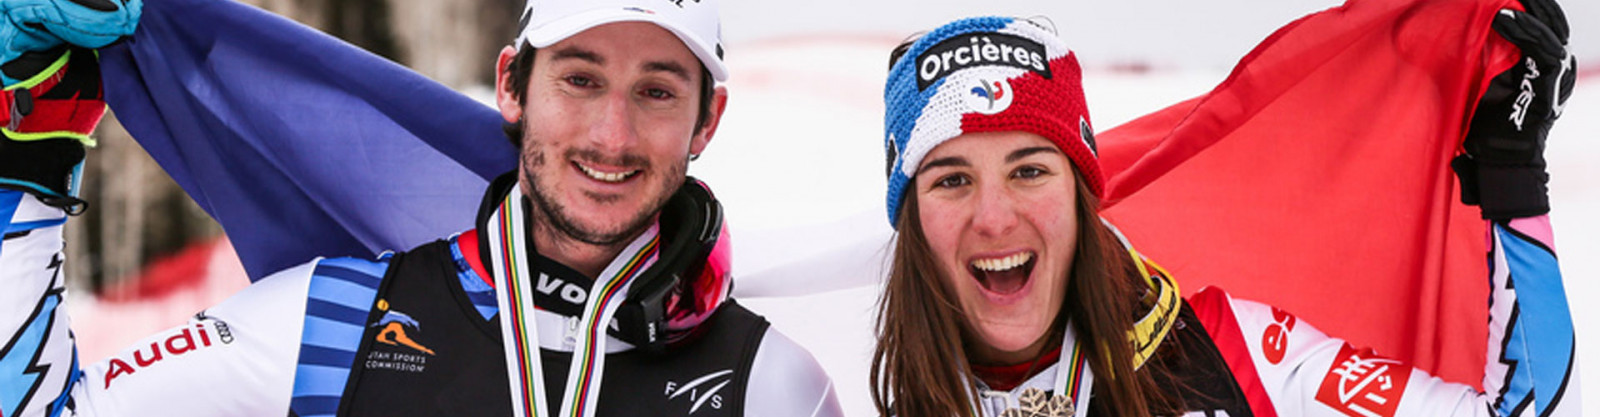 FRANÇOIS PLACE BECOMES SKICROSS WORLD CHAMPION, ALIZÉE BARON IS 3RD